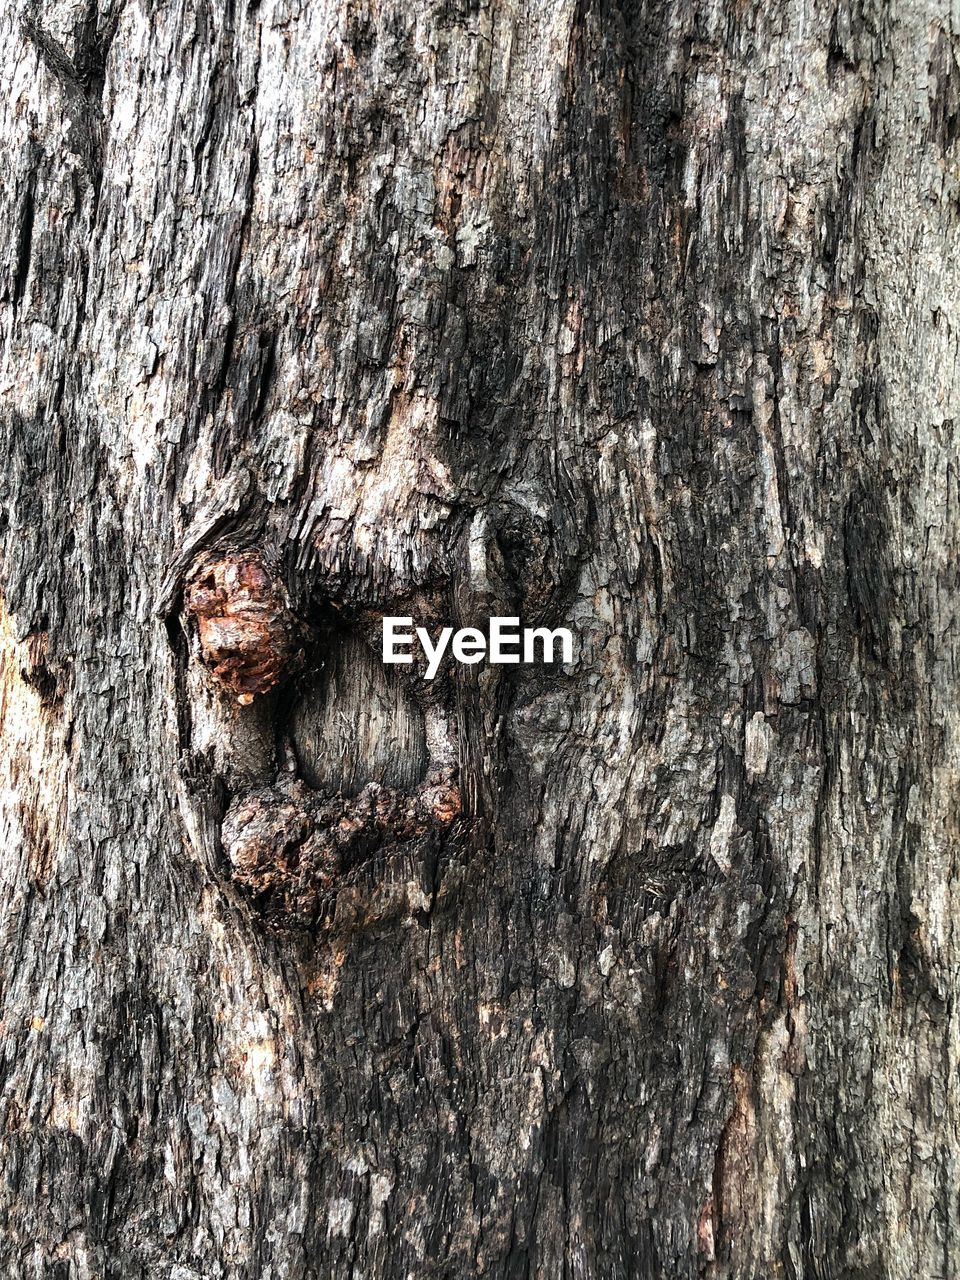 textured, tree trunk, trunk, tree, close-up, rough, backgrounds, full frame, wood - material, no people, plant, day, nature, natural pattern, outdoors, pattern, focus on foreground, plant bark, weathered, animals in the wild, bark